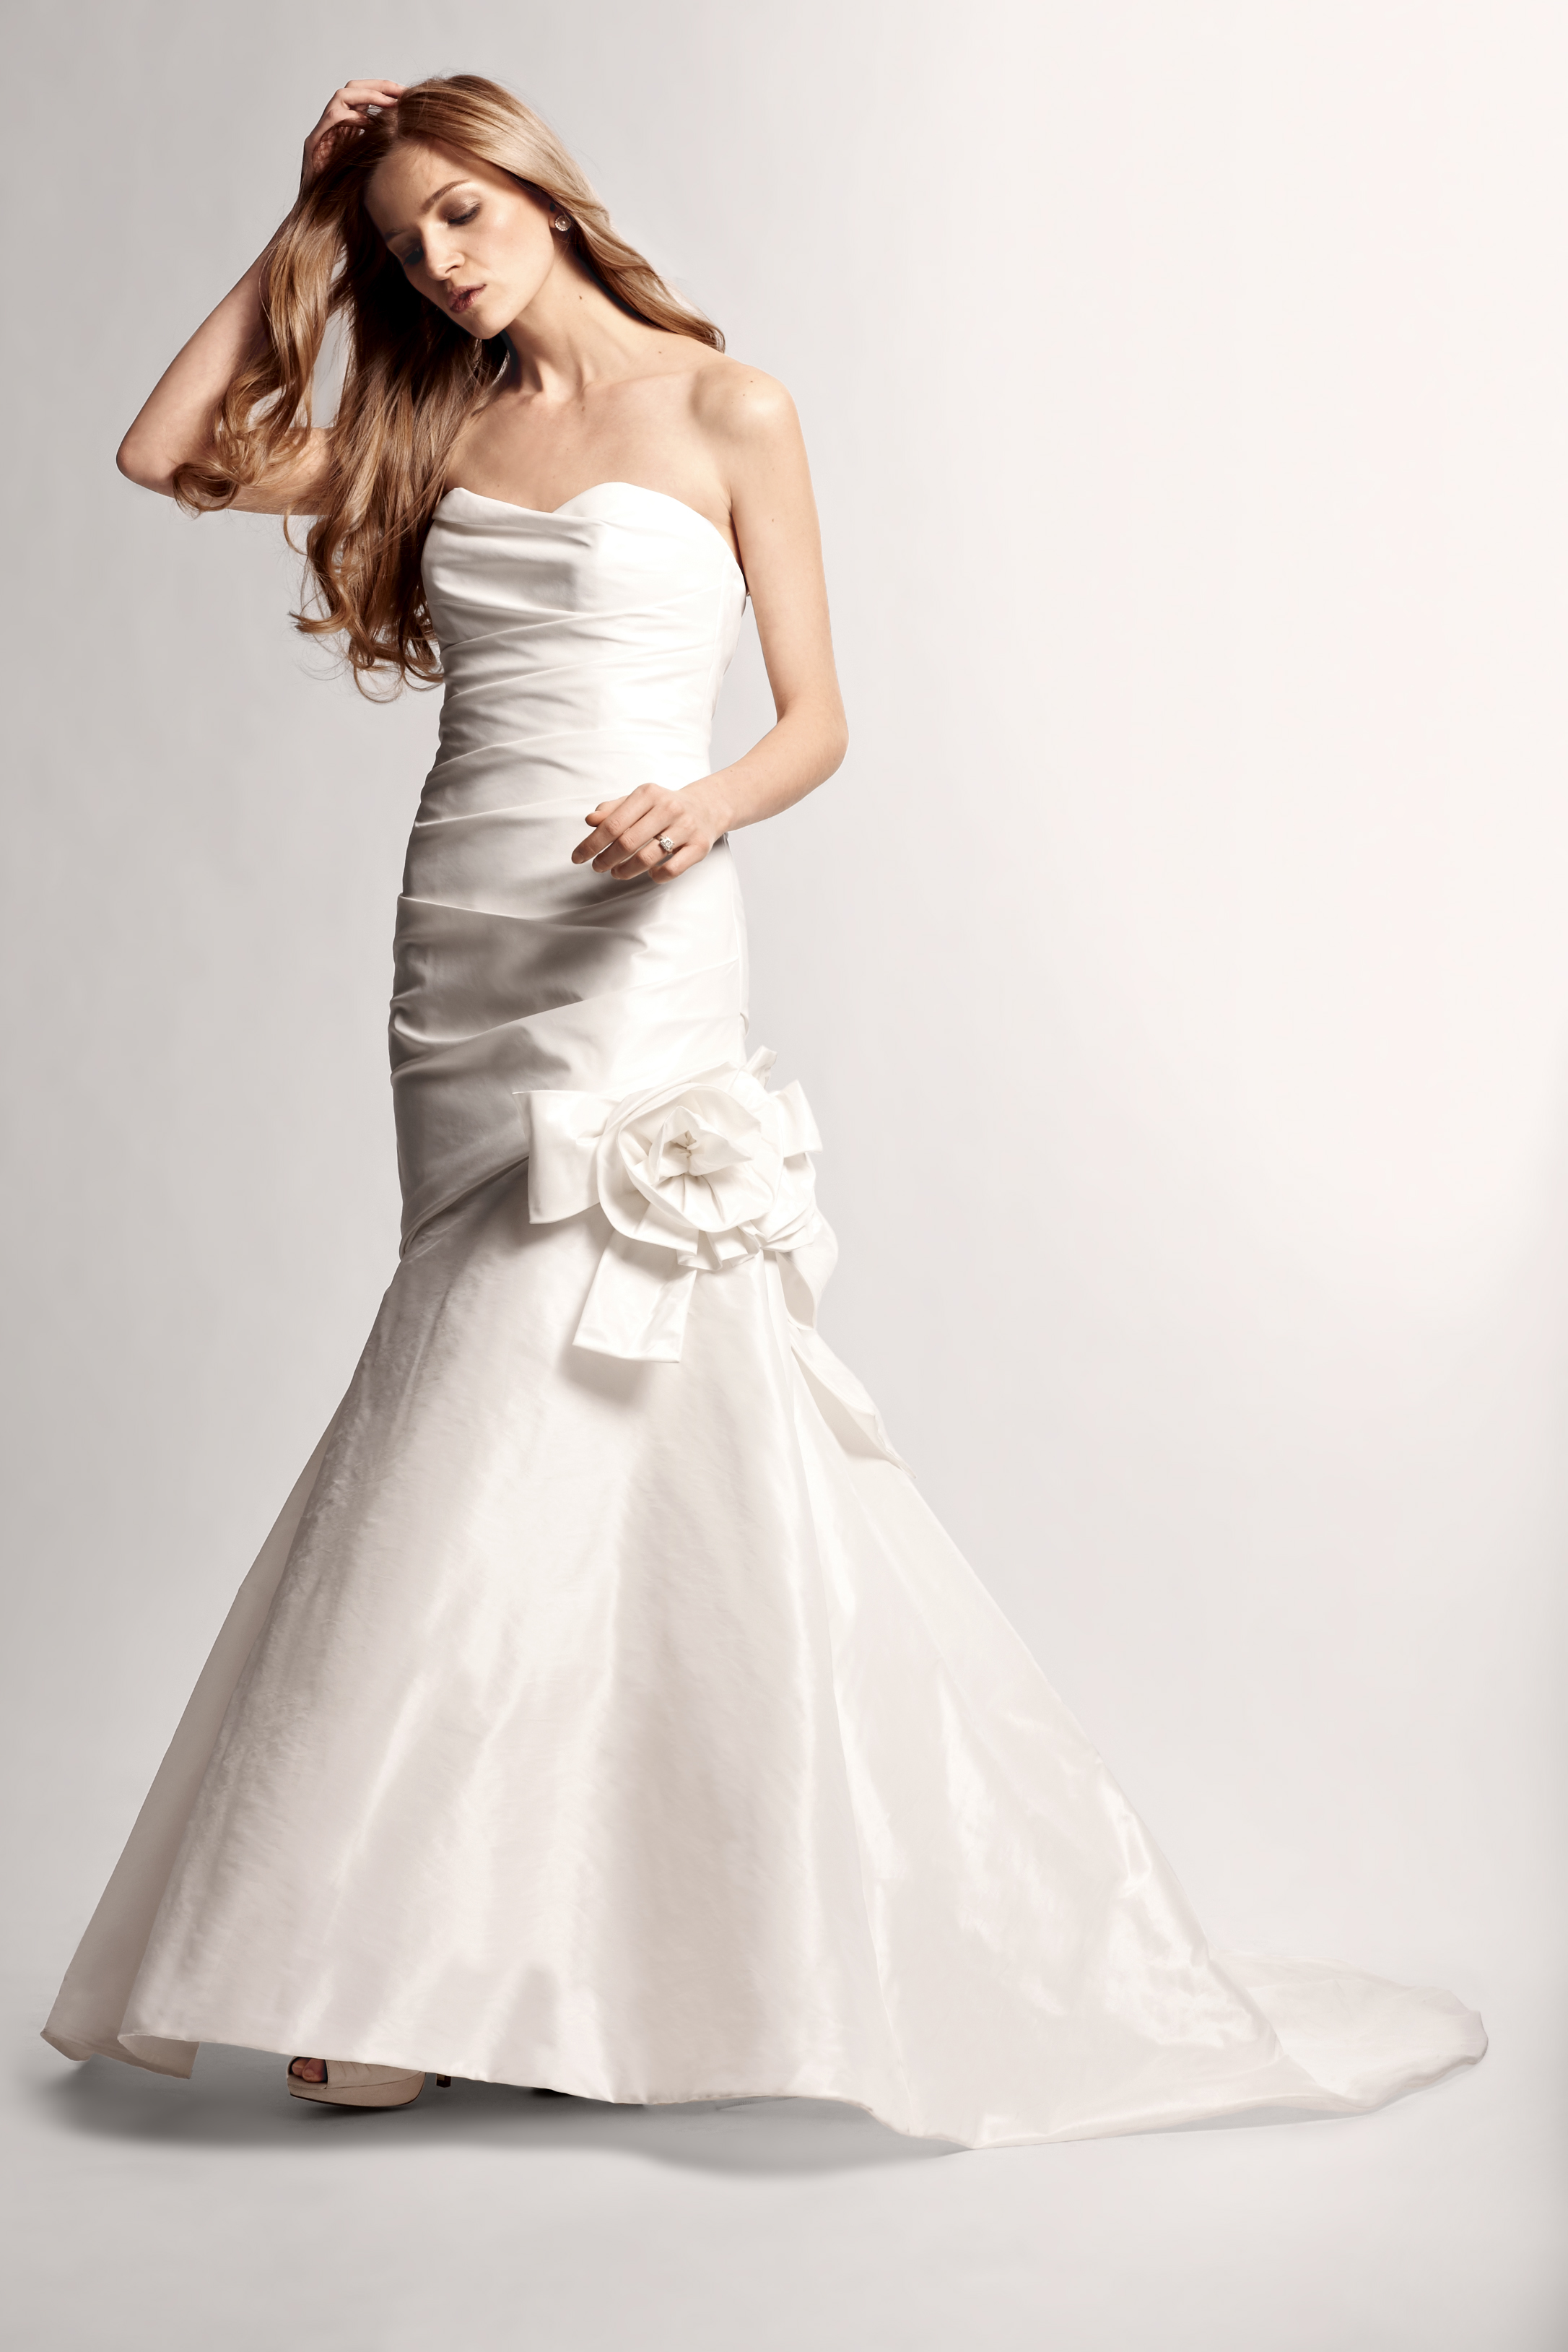 Wedding Dresses, Sweetheart Wedding Dresses, Fashion, Gown, Train, Sweetheart, Sash, Organza, Silk, Ruched, organza wedding dresses, Nordstrom Wedding Suite, nouvelle amsale, trumpet shaped, bow-know sash, Silk Wedding Dresses